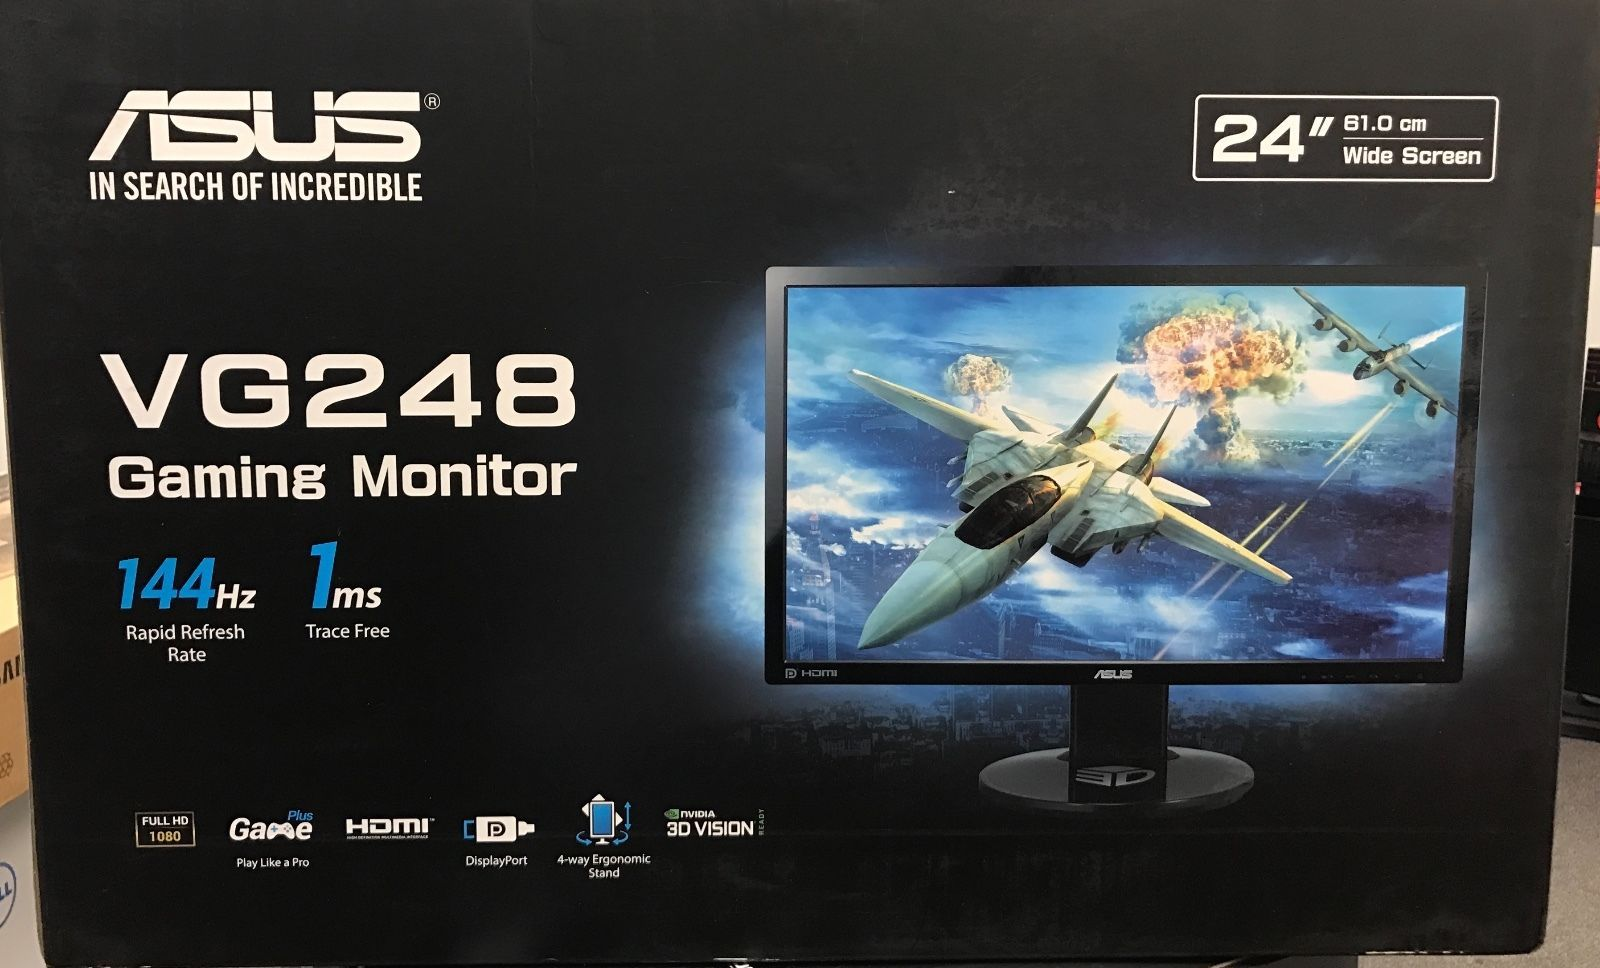 asus vg248qe test wie gut ist der 144hz monitor von asus. Black Bedroom Furniture Sets. Home Design Ideas